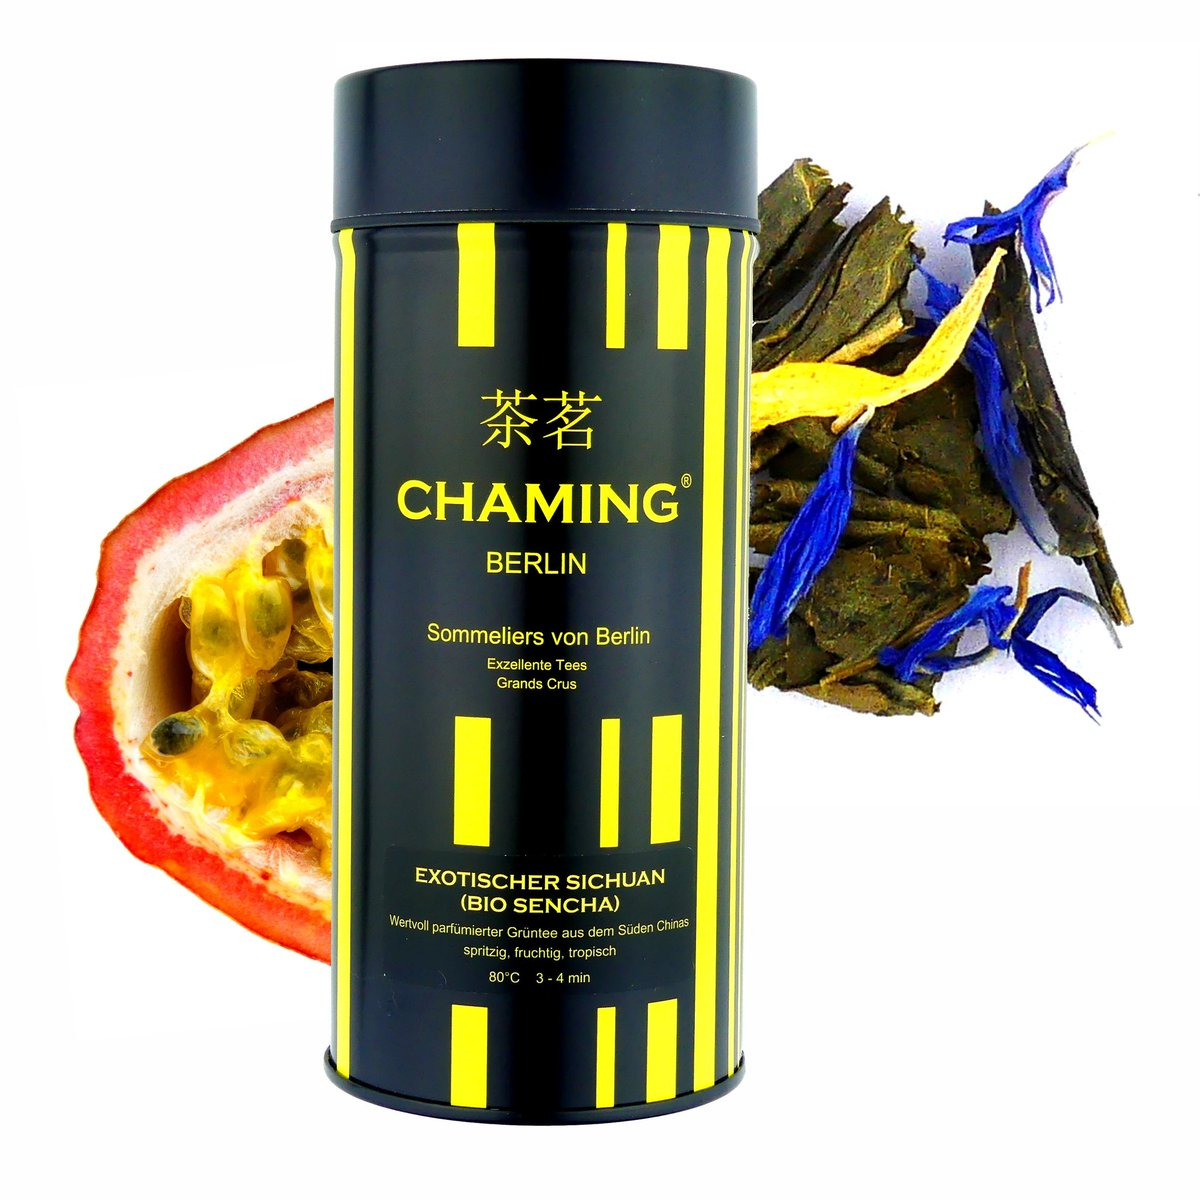 Our EXOTISCHER SICHUAN! #Lively, #fresh notes of #Bergamot and #Passionfruit blend into the green and nutty notes of a Chinese #Sencha underlined by the sensuality of marigold blossoms. A tasty #tea for special moments. #ChamingTea #greentea #grünertee #healthy #organic